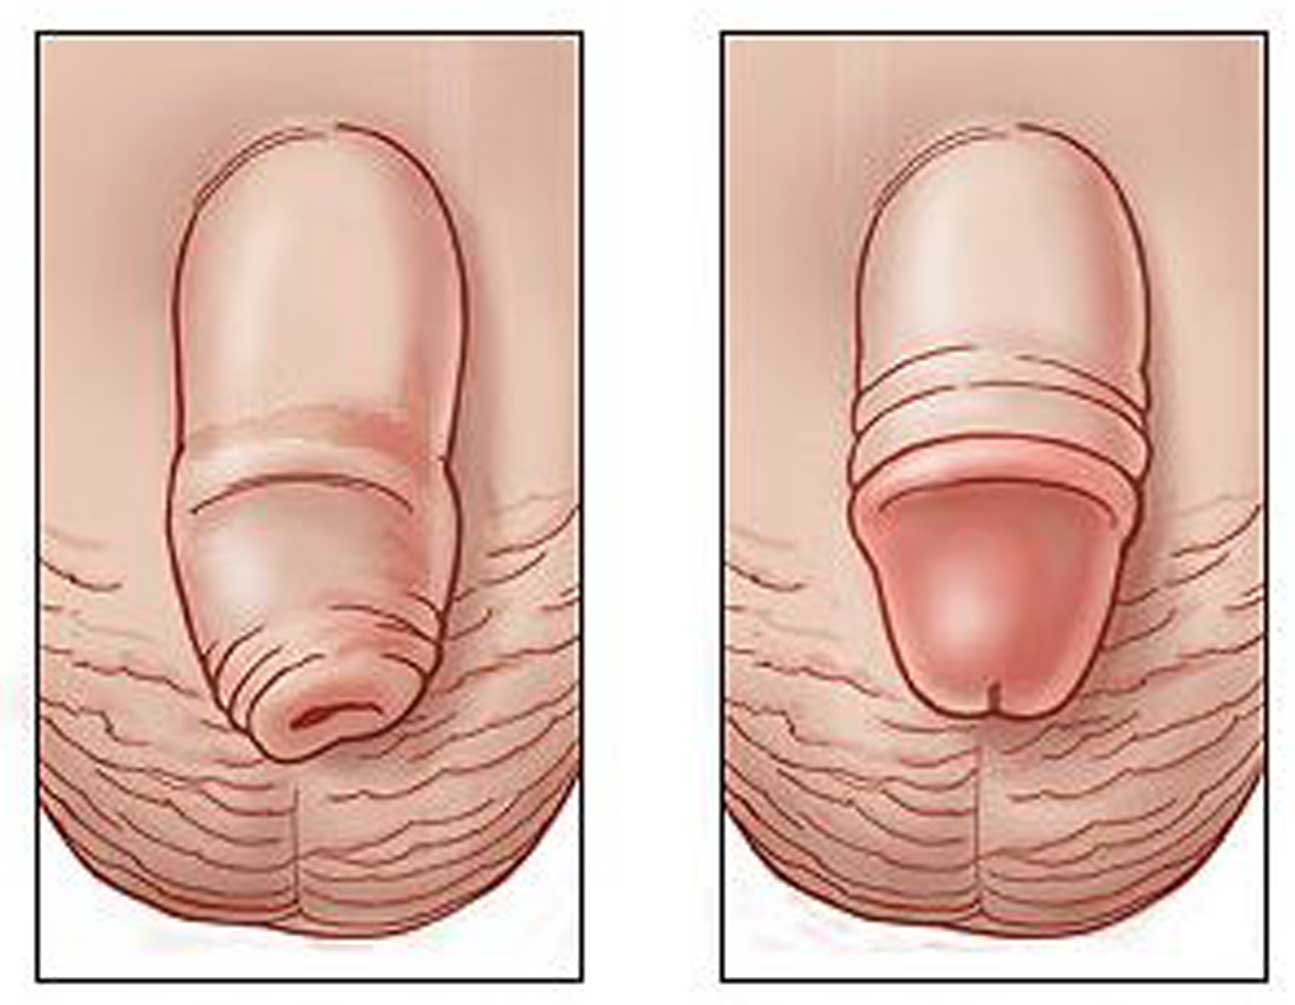 Experience Injuries to the Male Genitalia